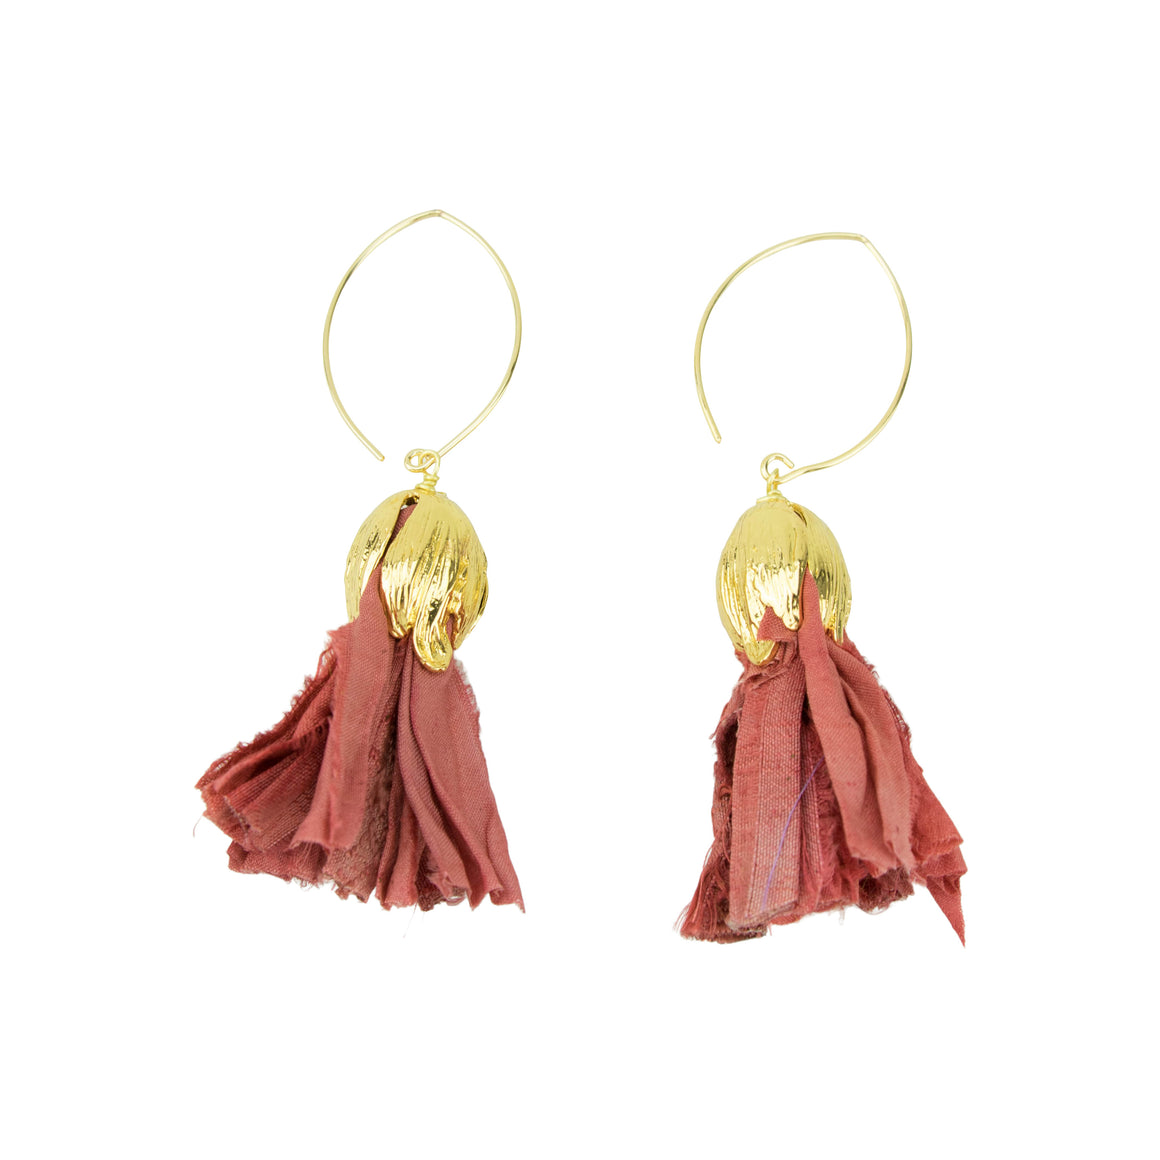 Vintage Silk Hoopla Drop Earring in Soft Coral